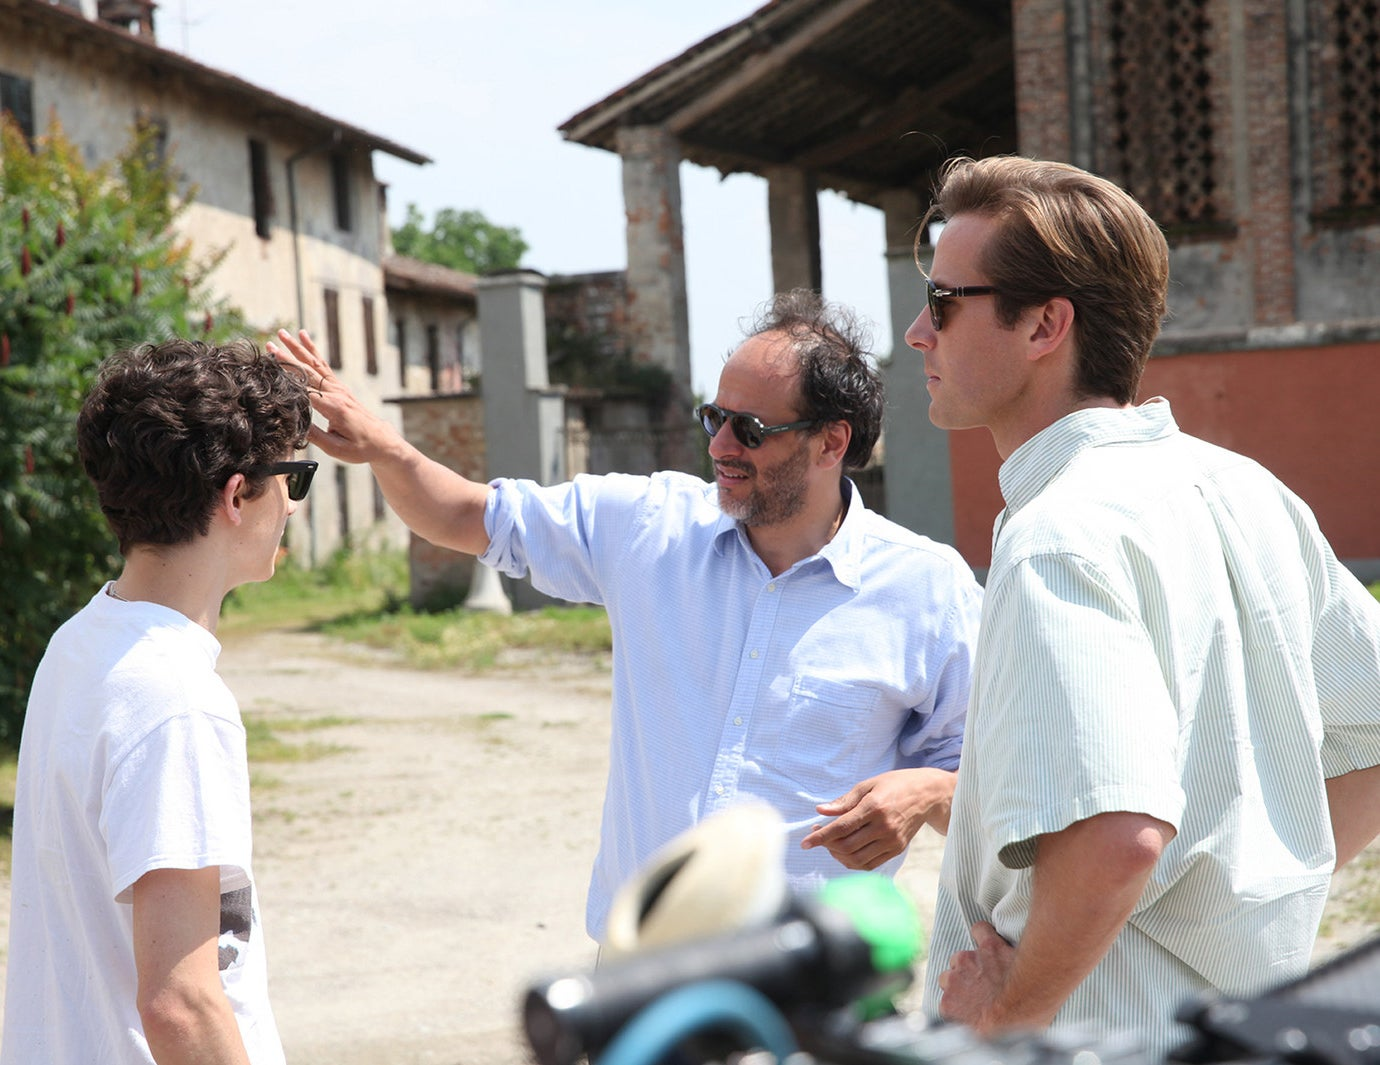 Director Luca Guadagnino on the set of Call Me by Your Name with Timothée Chalamet and Armie Hammer.